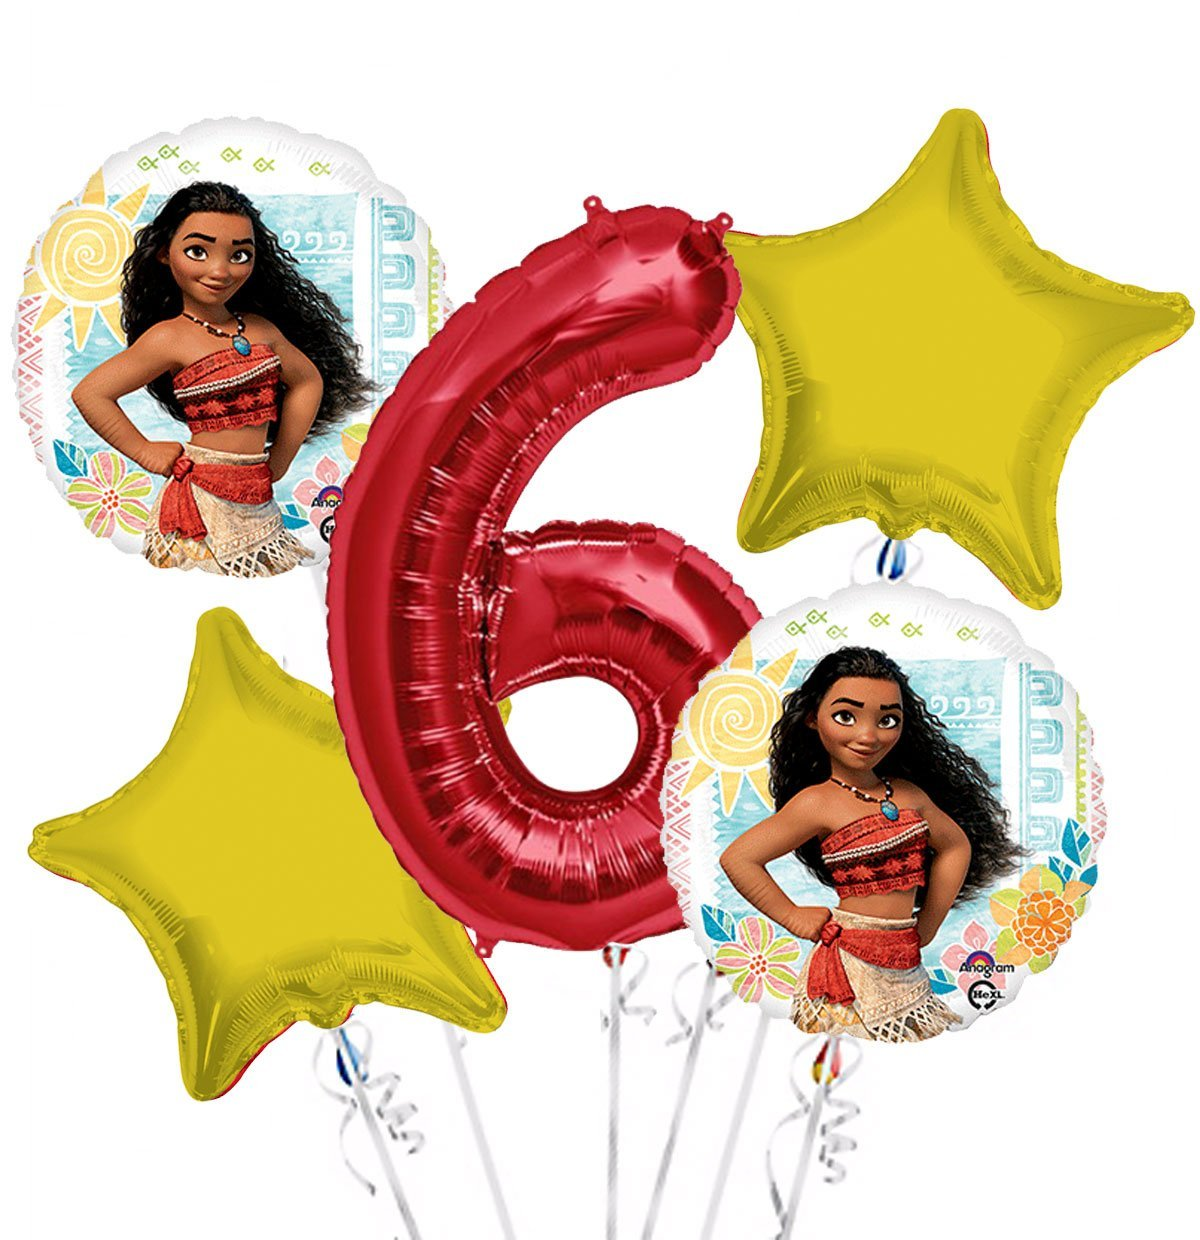 Moana Balloon Bouquet 6th Birthday 5 pcs - Party Supplies, 1 Giant Number 6 Balloon, 34in By Viva Party